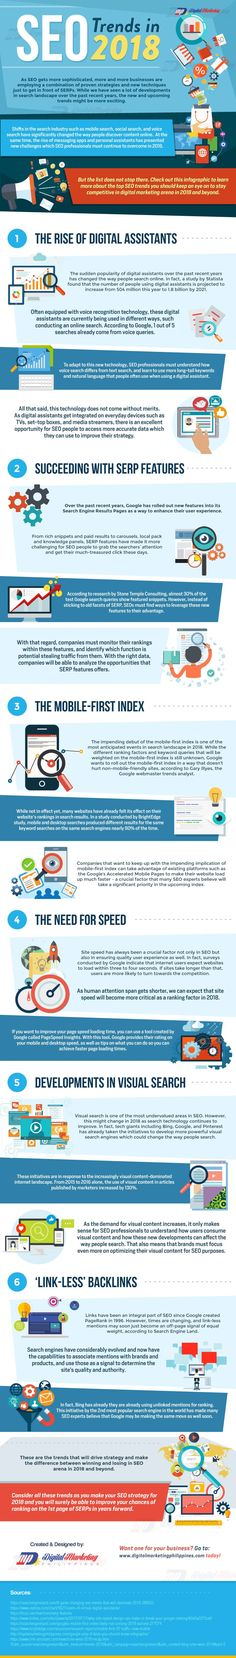 6 SEO Trends for 2018 - Infographic    Shared by VERTI GROUP INTERNATIONAL A.K.A. SEO SEATTLE® - seoseattlegroup.com